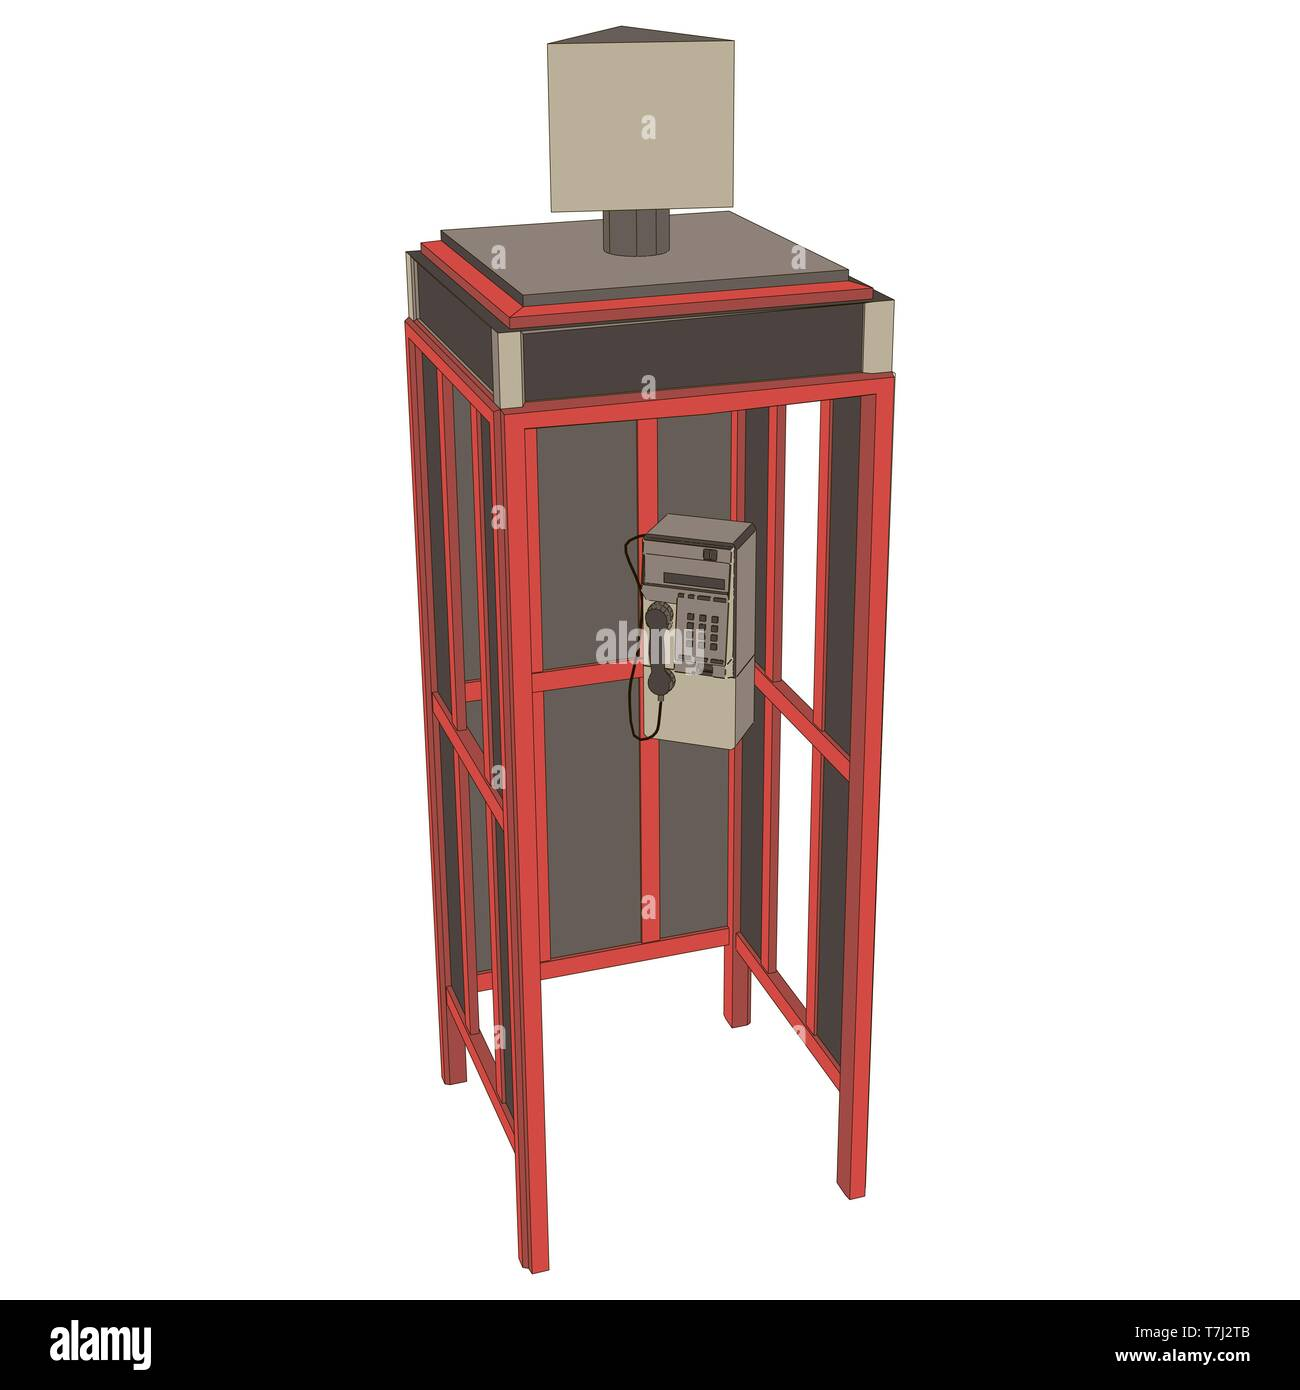 Phone booth telephone London vector box red illustration English icon England old isolated - Stock Image